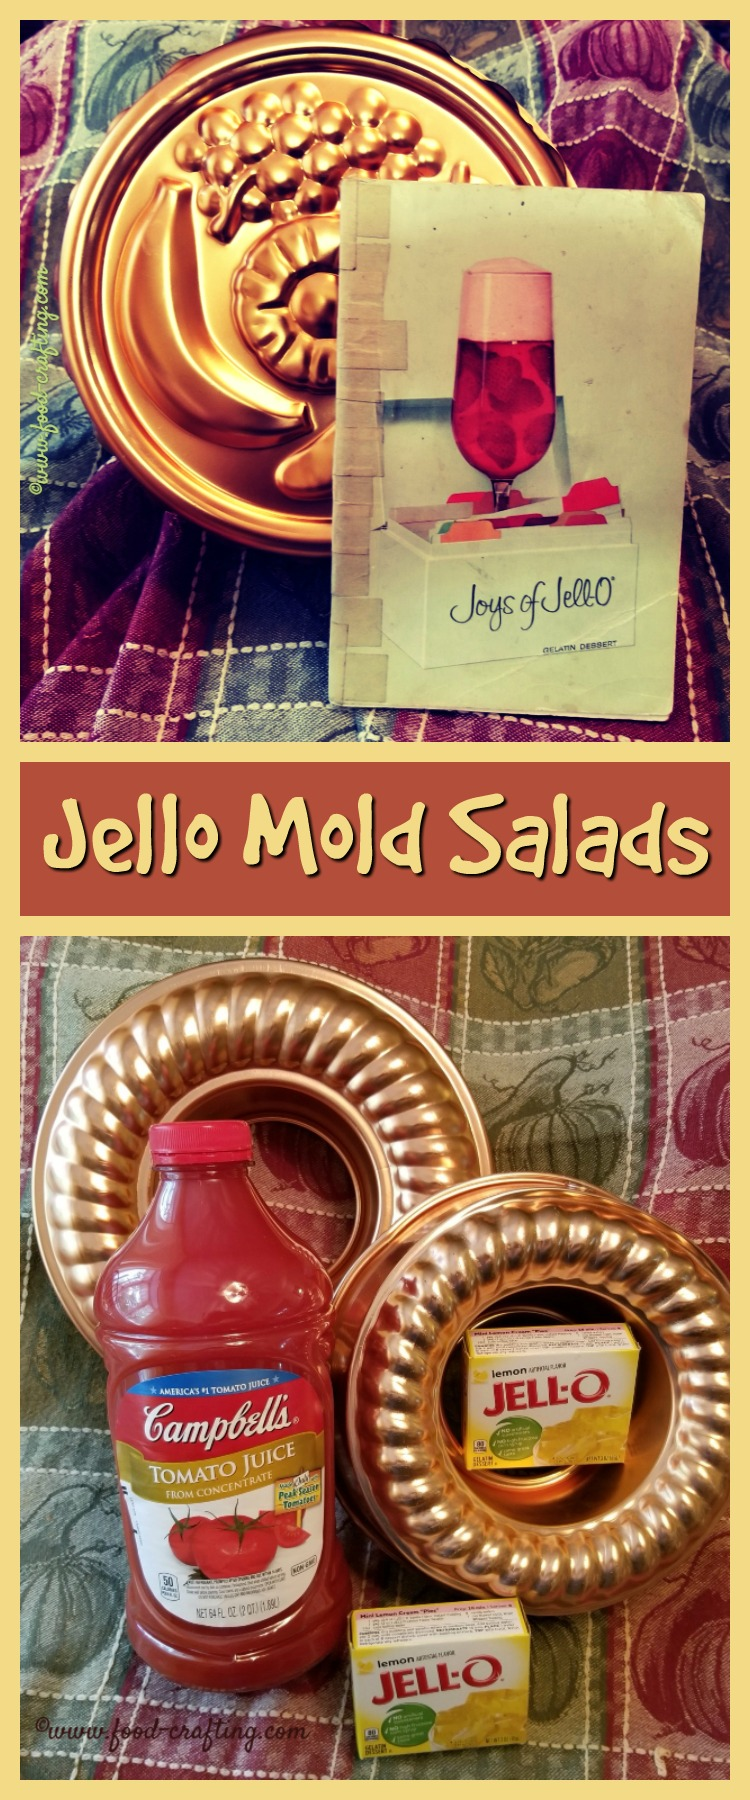 We're going vintage gelatin recipes - specifically those Jello Mold Salads that I remember seeing everywhere years ago. Never thought of them as salads!